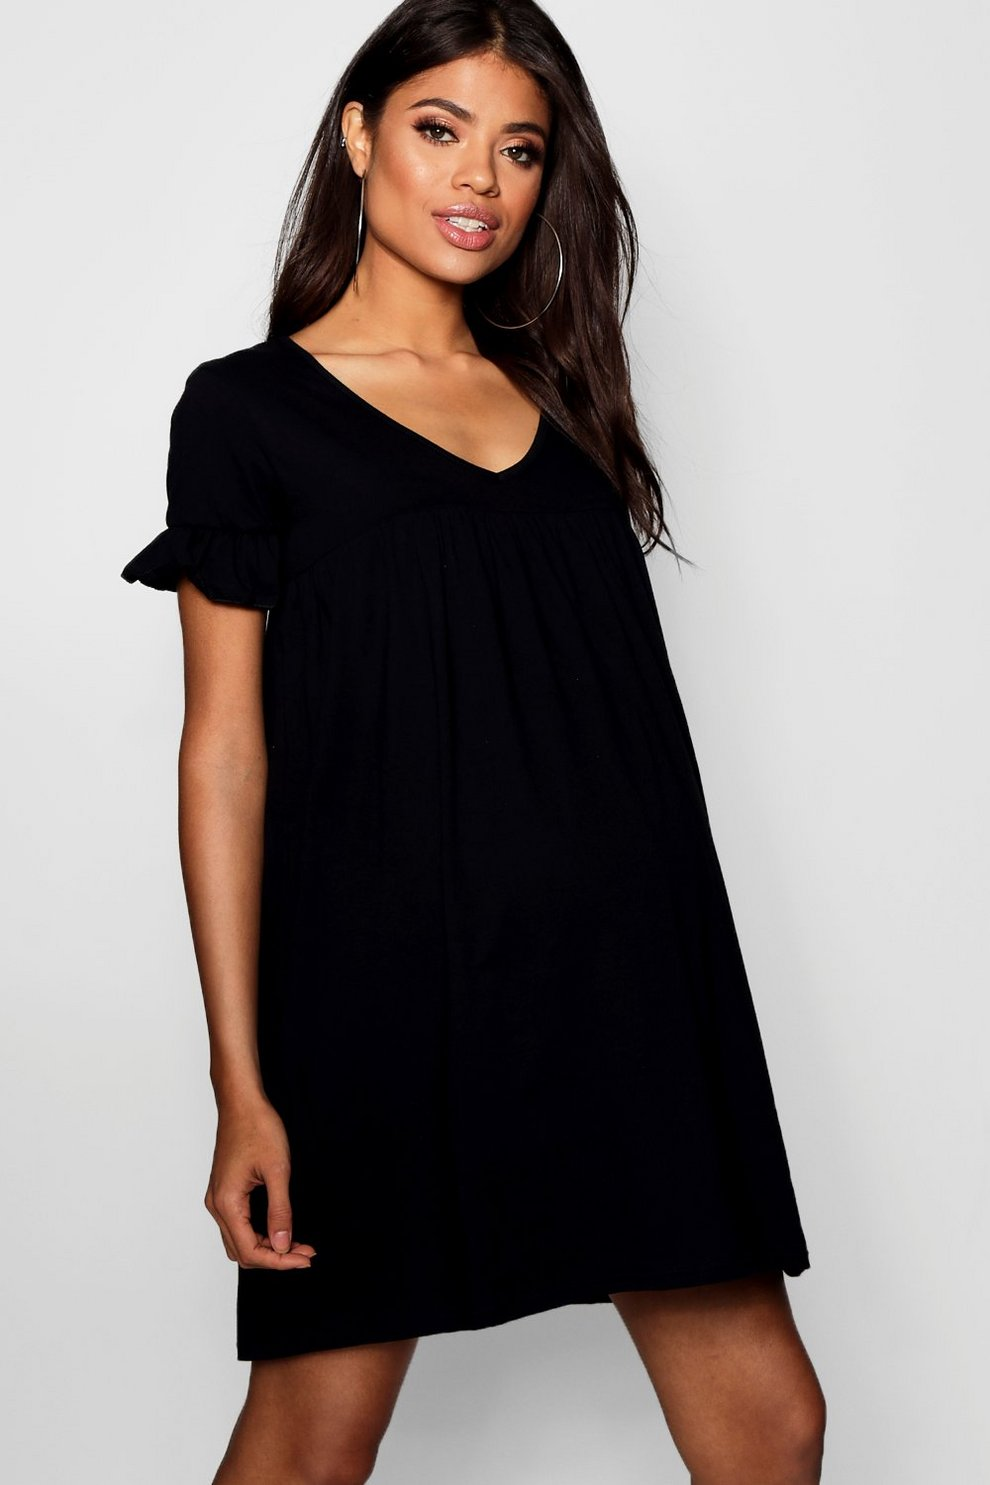 Boohoo Maternity Iris Frill Short Sleeve Smock Dress Collections Cheap Online Cheap Sale Enjoy Fast Delivery Online eiiKC5tZjw